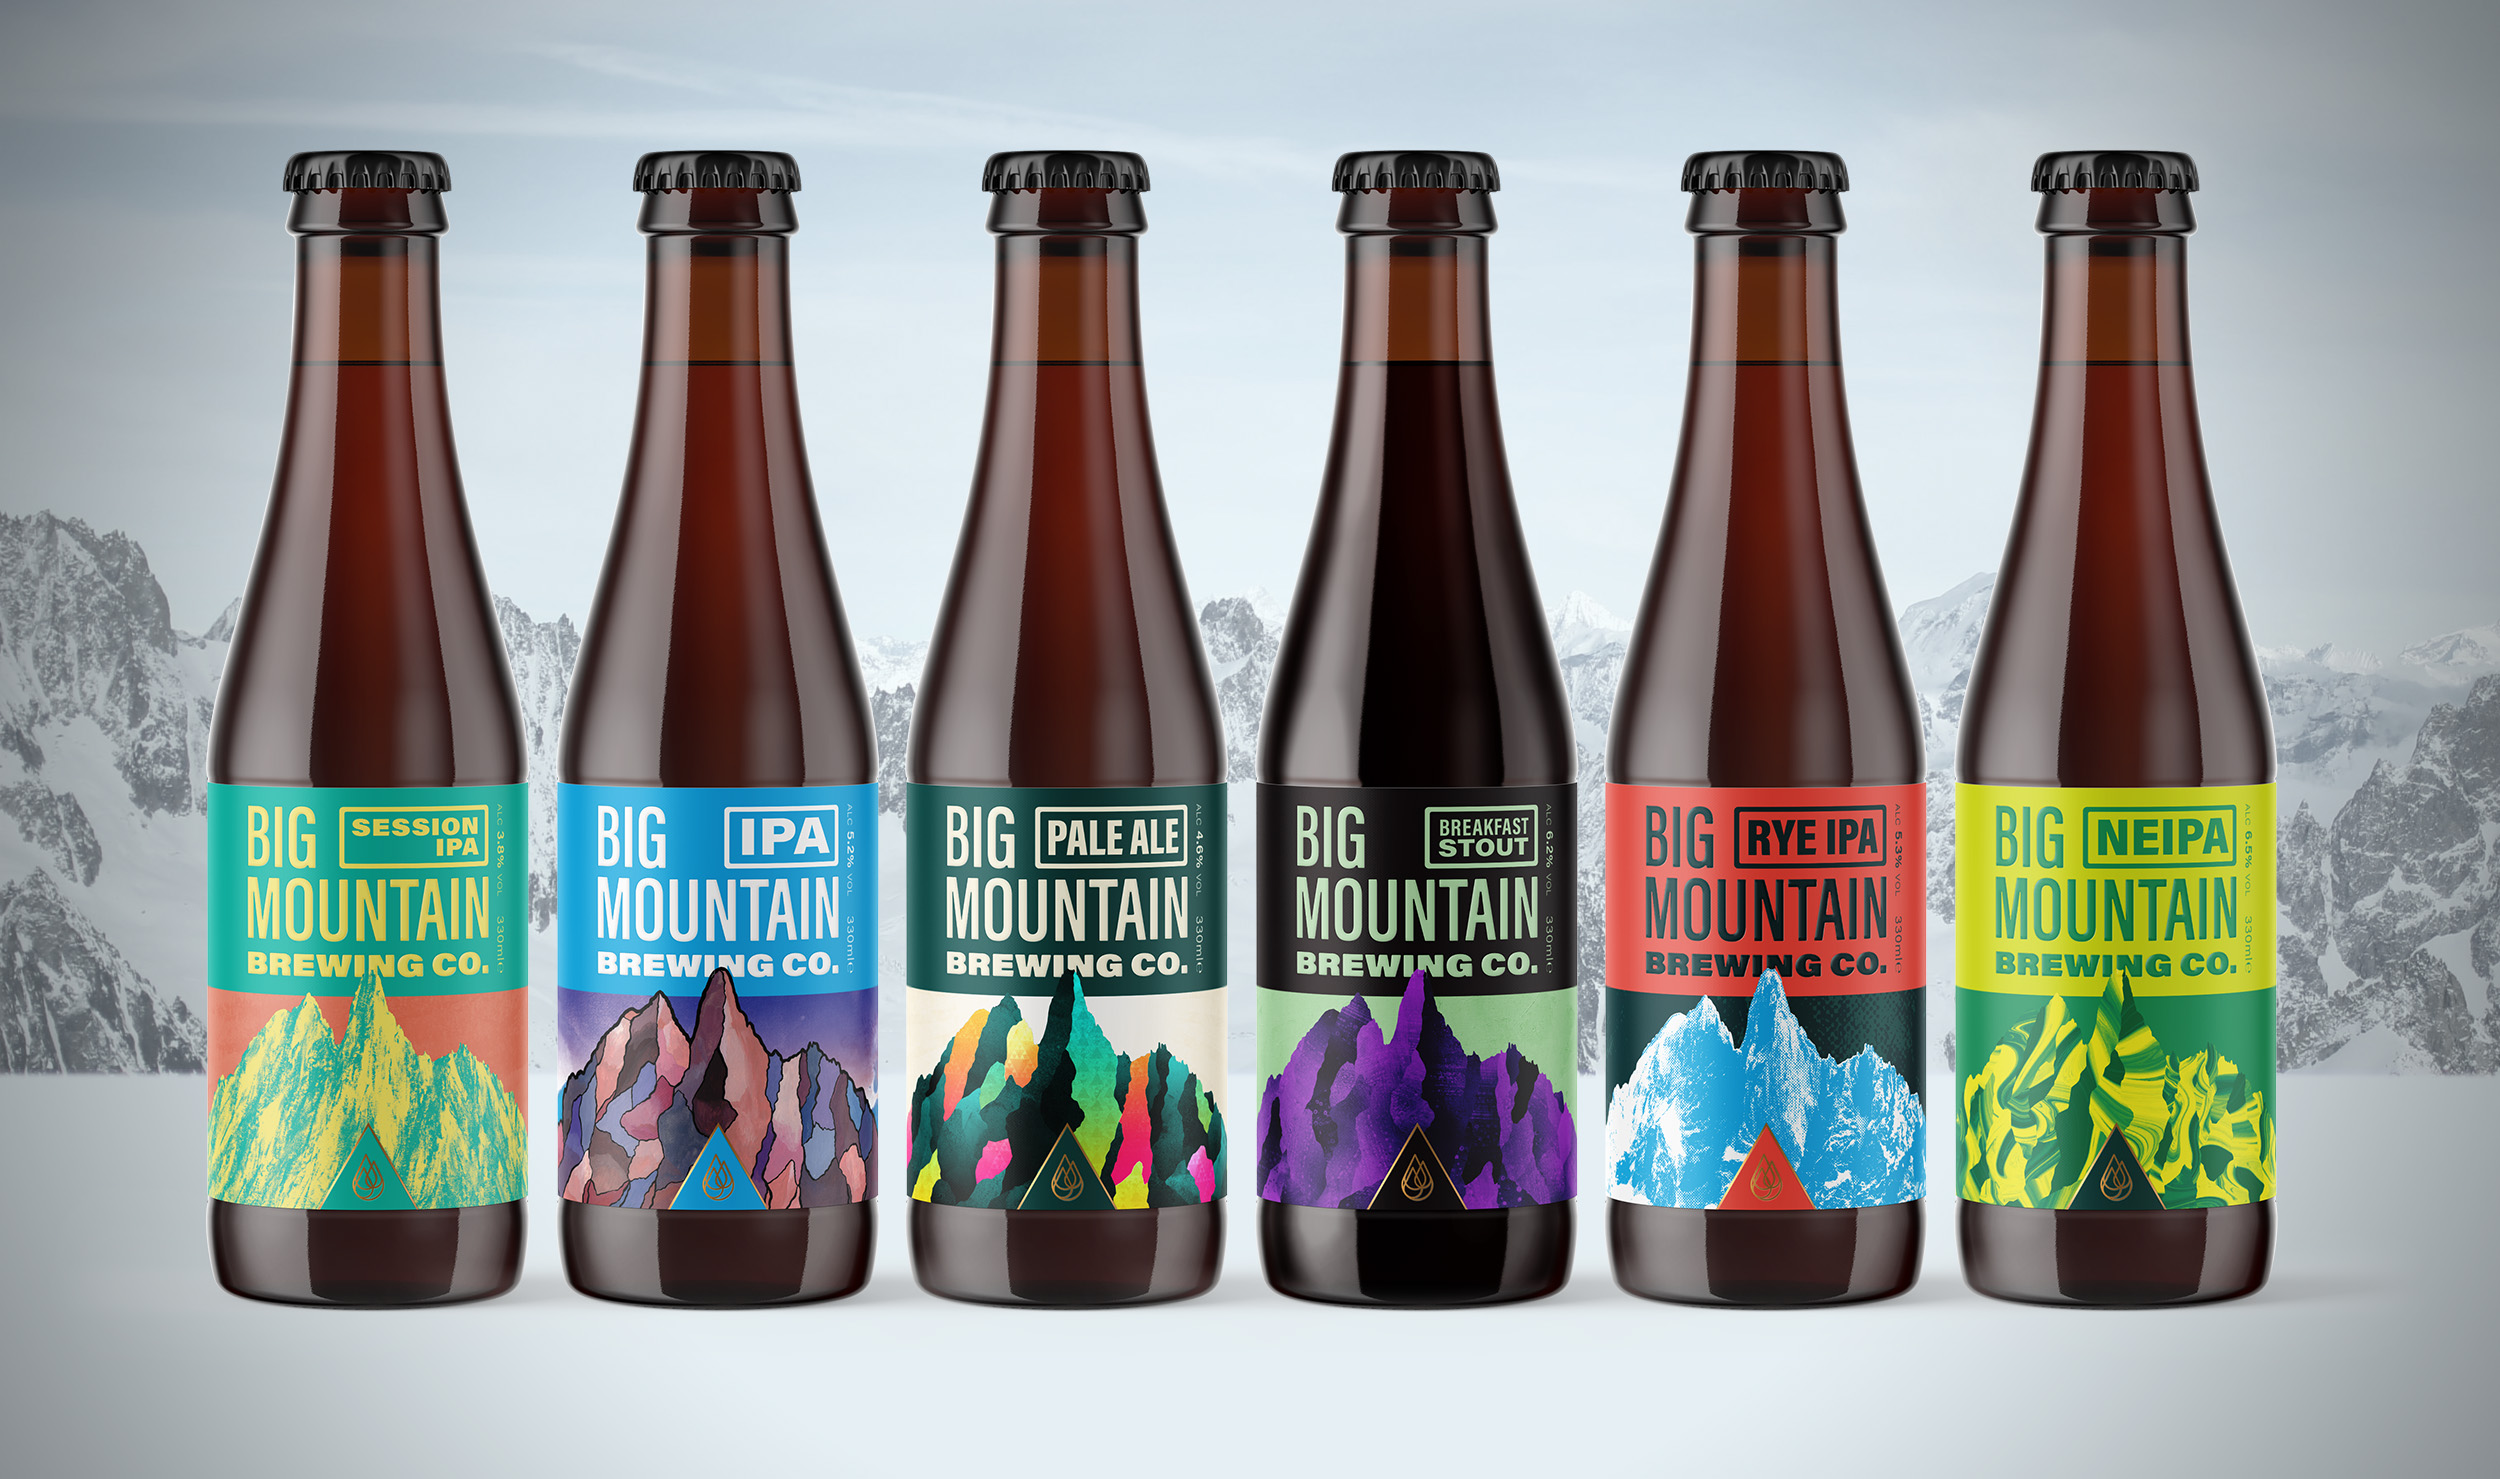 Brewed for adventure, Big Mountain Brewing Co.